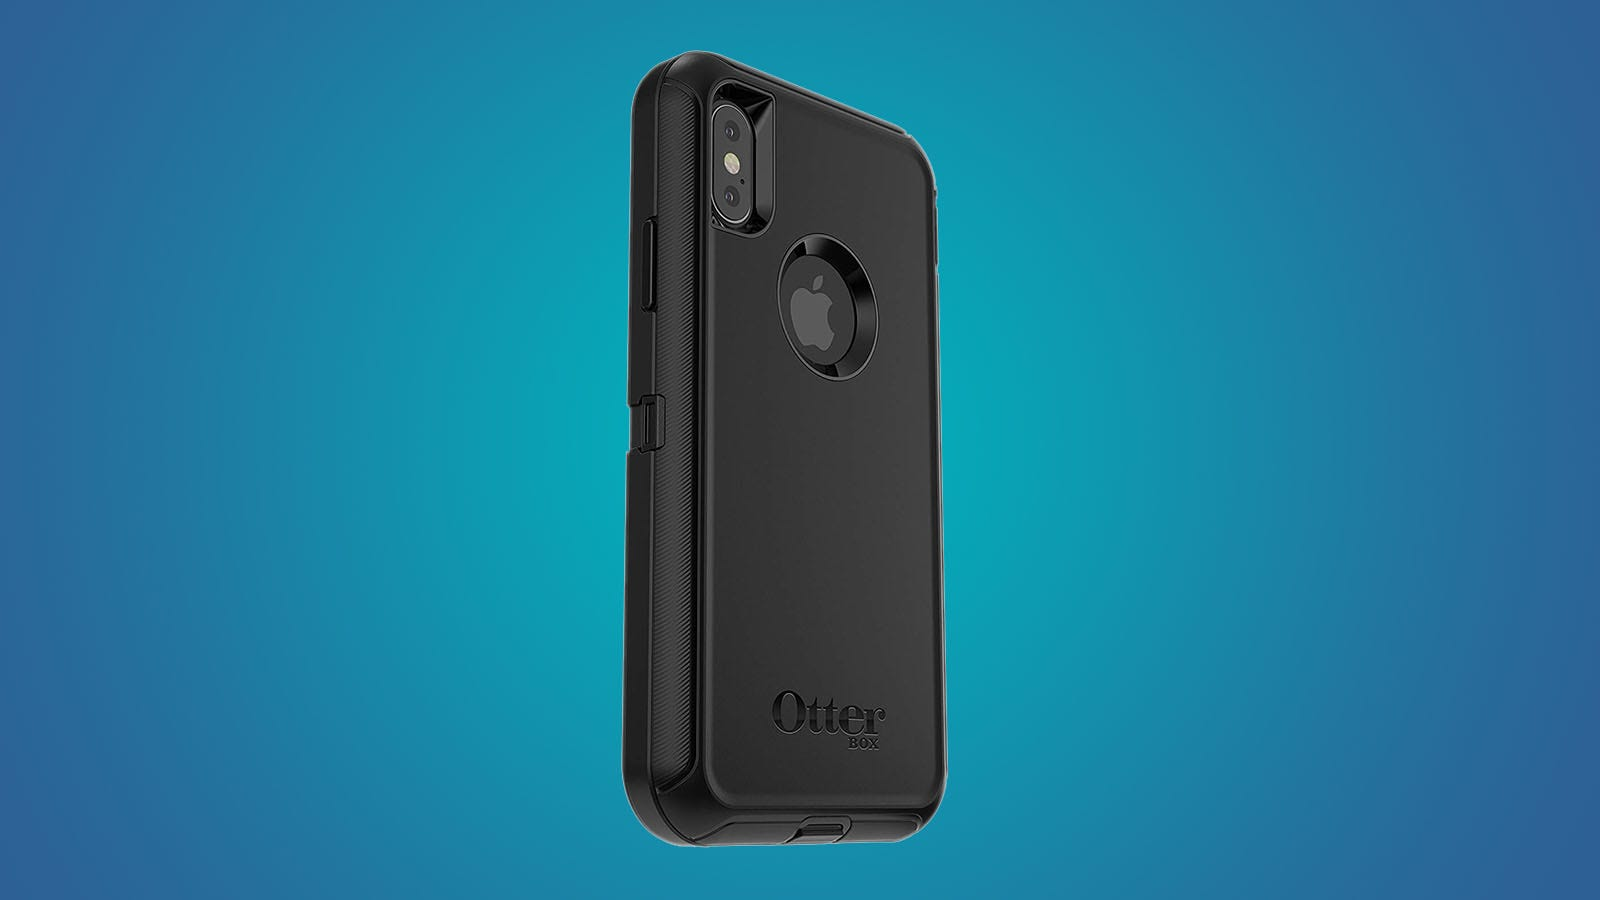 The Iphone X Is A Beautiful Phone That S Gl And More Protecting Your 1000 With Sy Case Then No Brainer Here Our Top